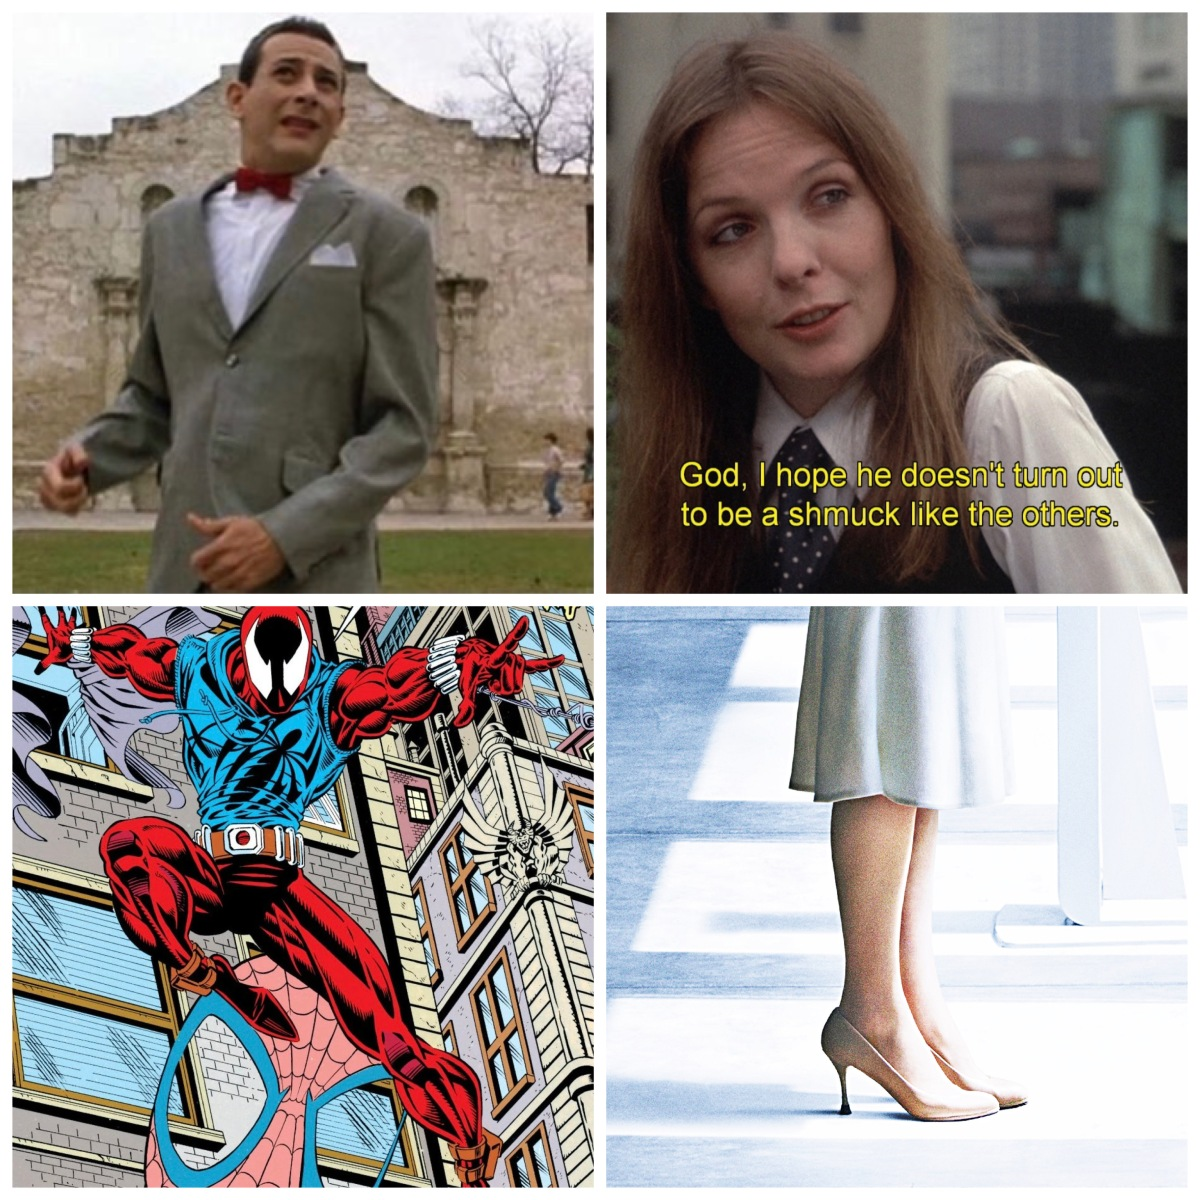 Pee-Wee Herman at the Alamo, subtitles in Annie Hall, Marvel's Ben Reilly, and Bryce Dallas Howard's heels from Jurassic World.